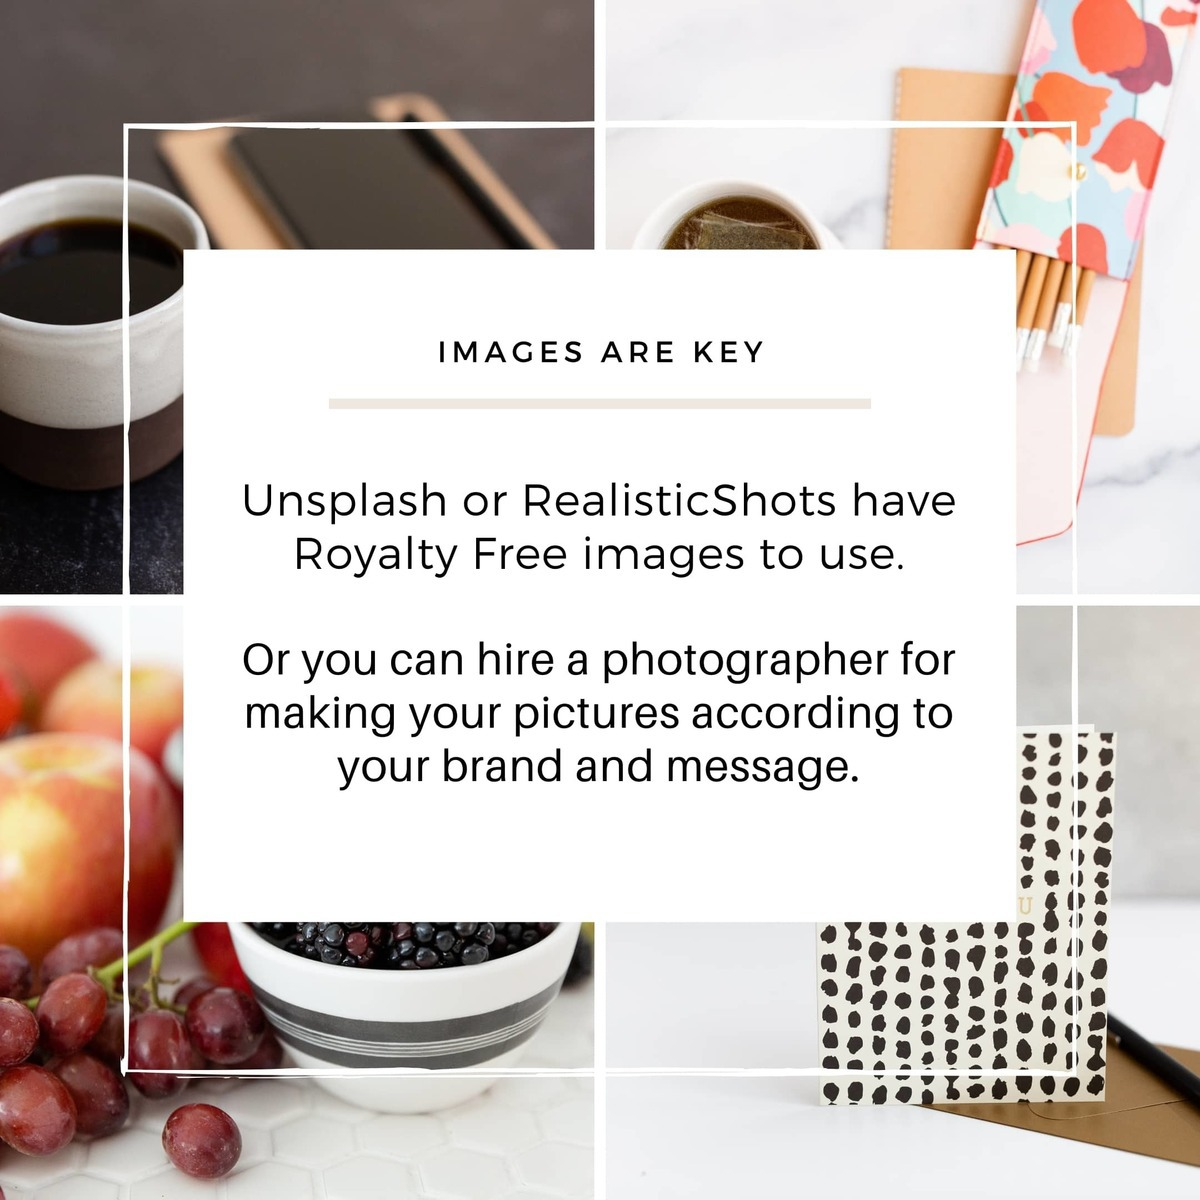 Images are key, either you look for them in Stock images websites or hire a branding photographer to make your pictures according to your brand and message